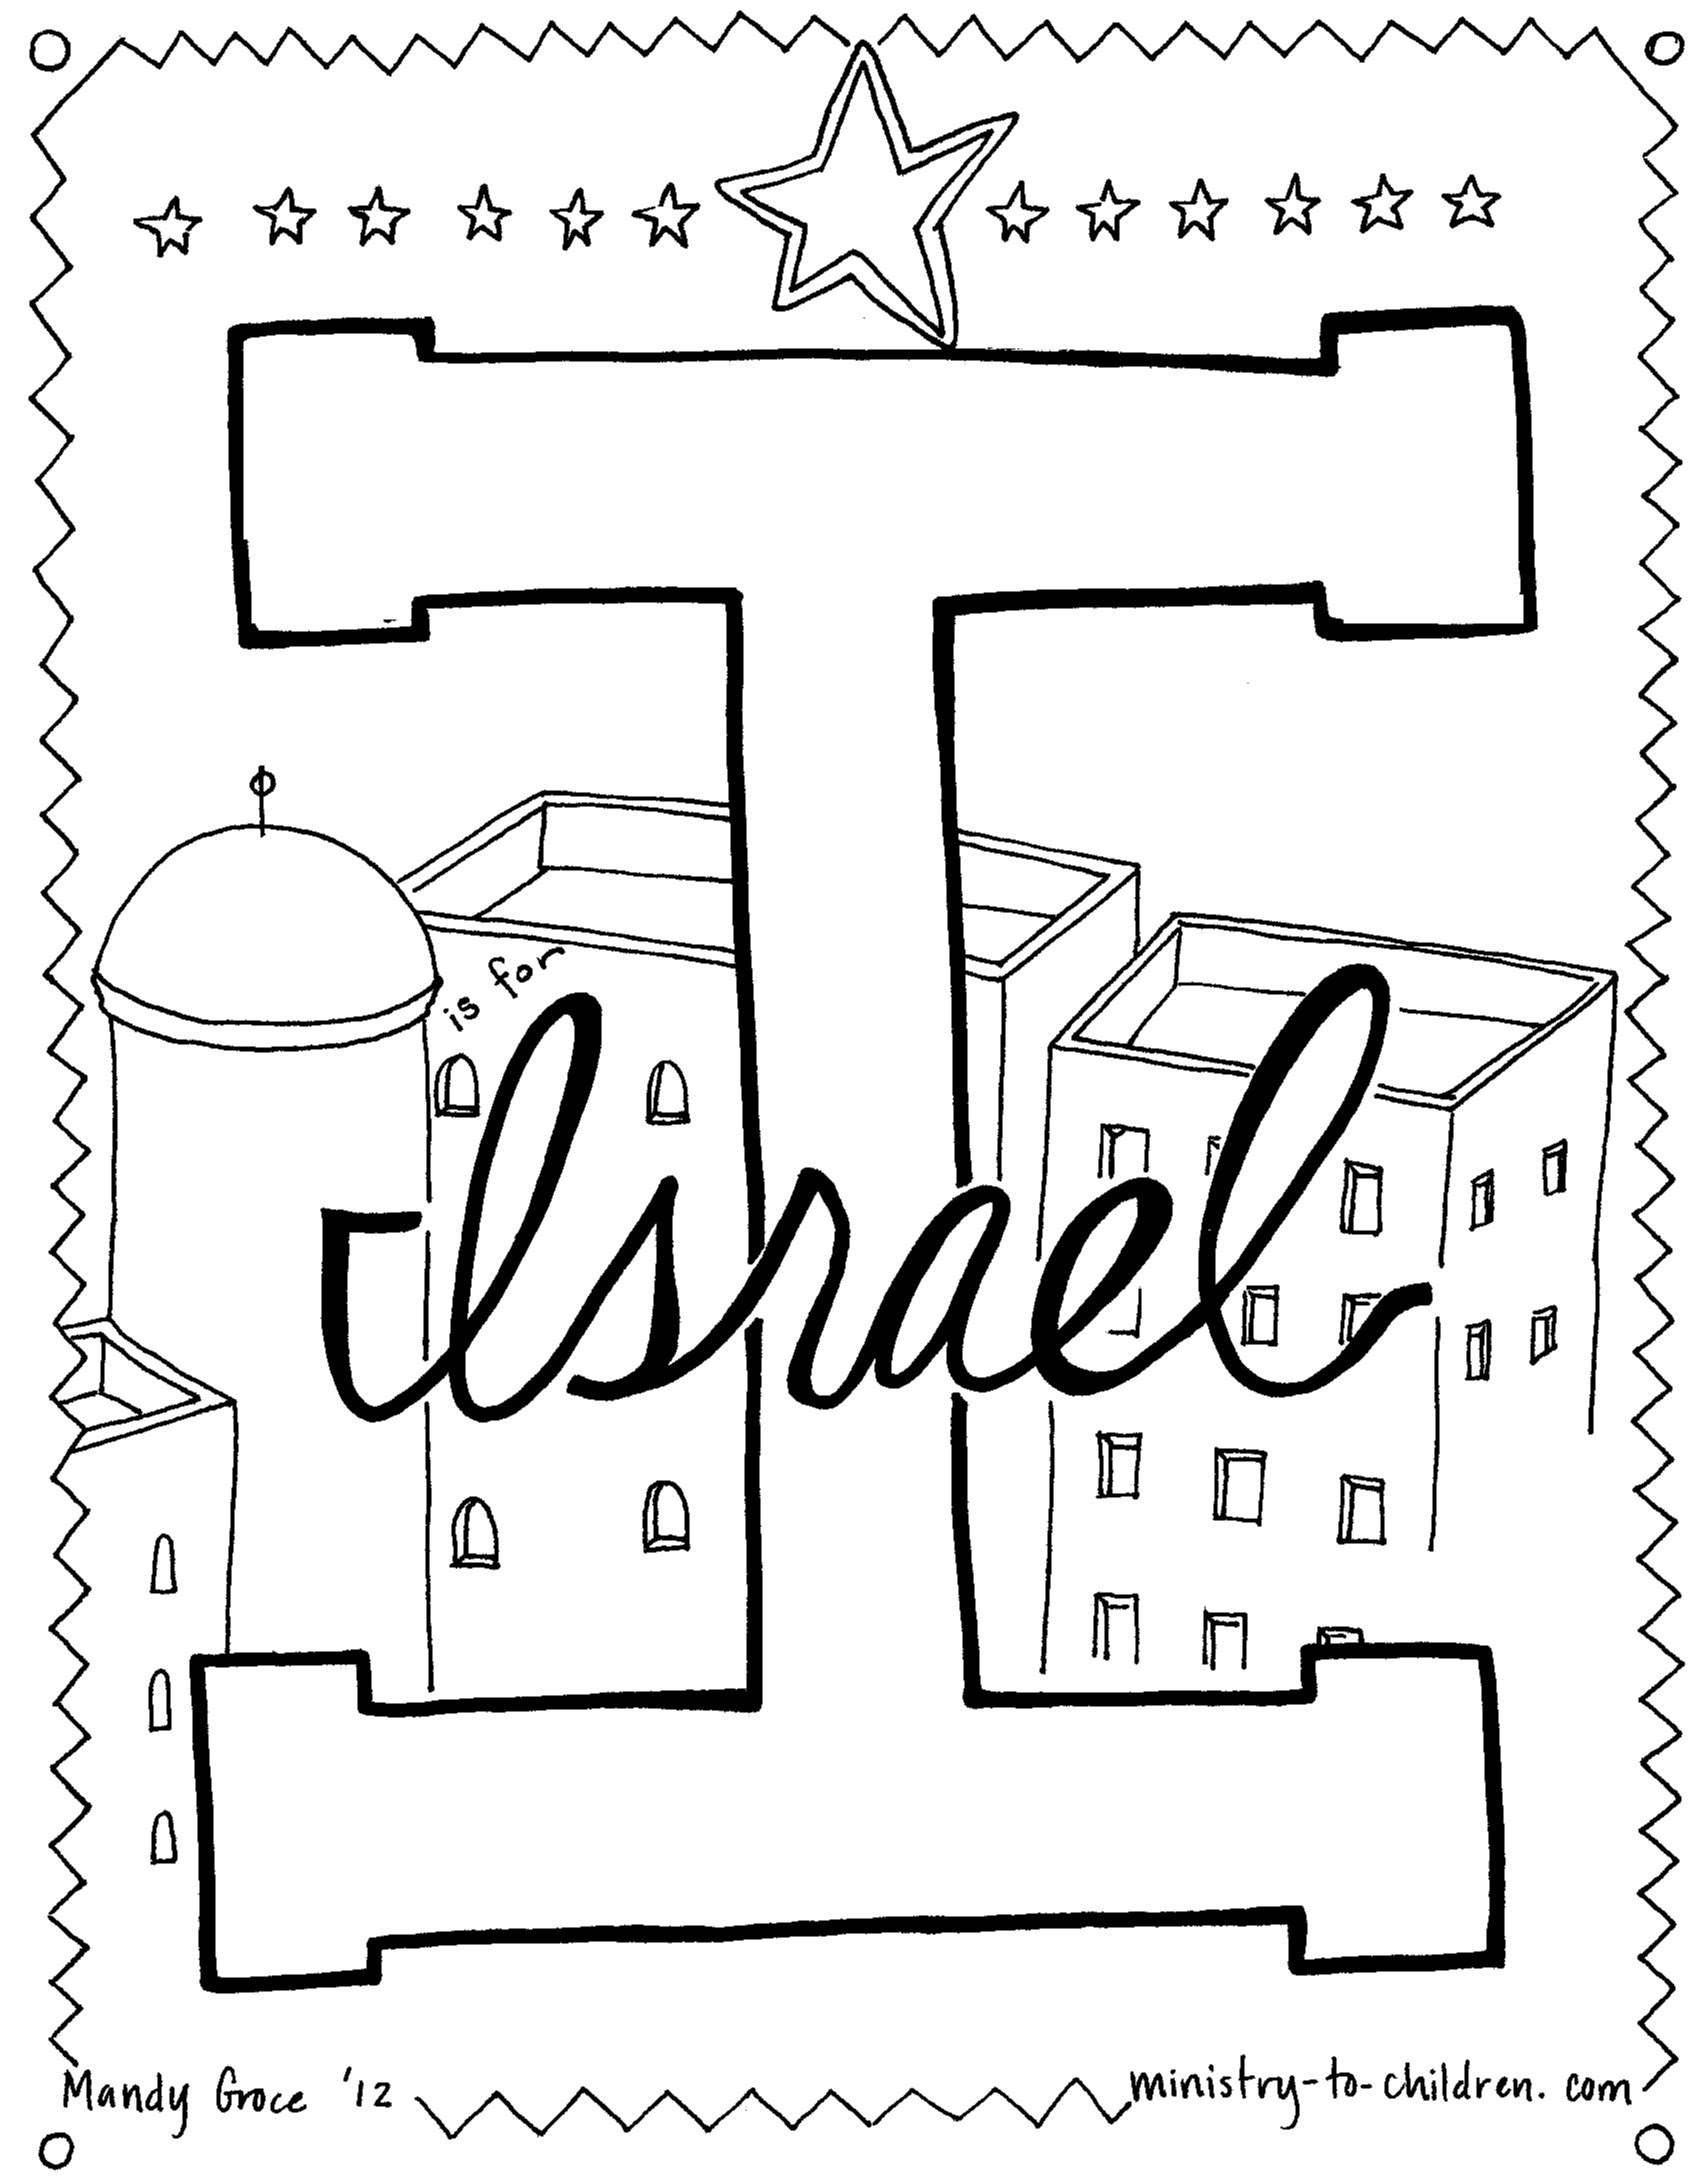 Multicultural Coloring Pages For Preschoolers